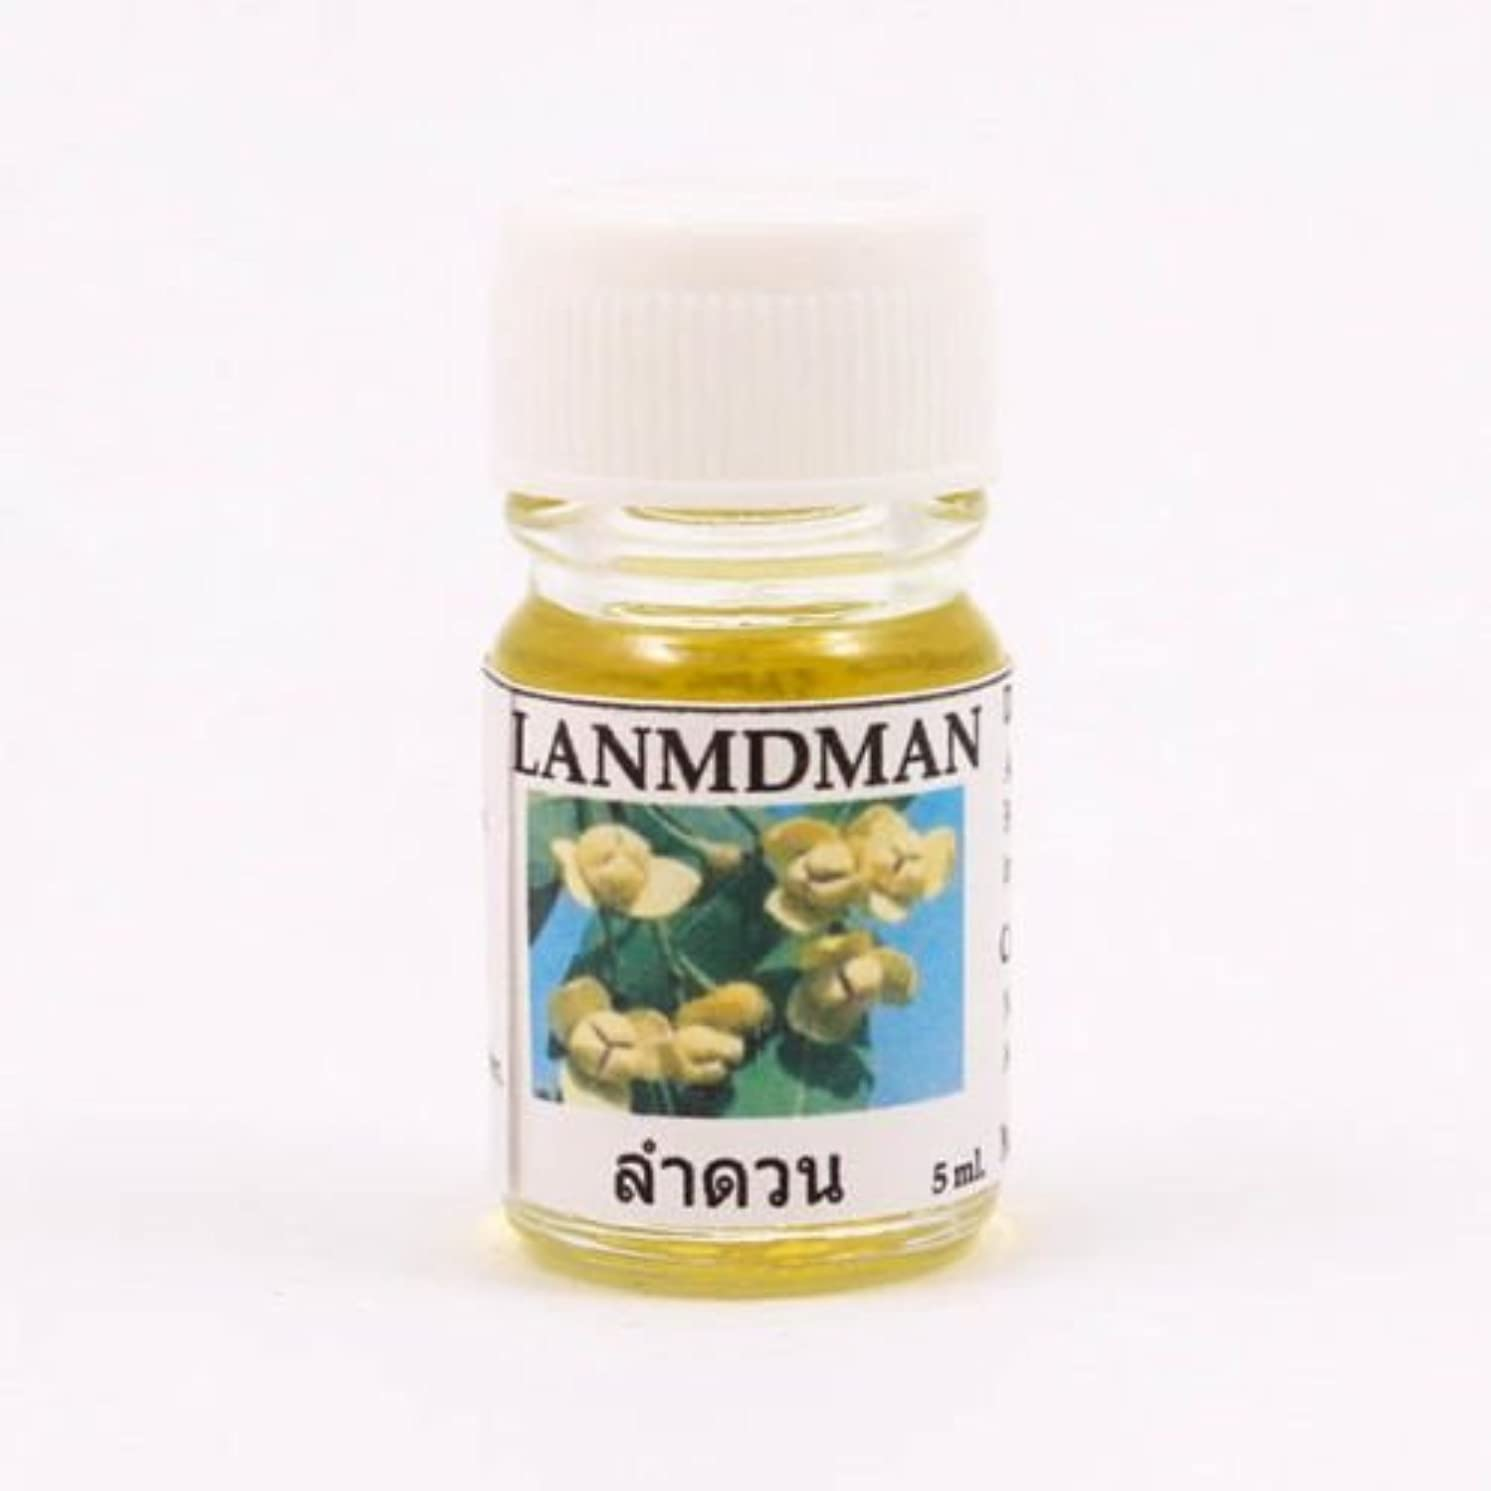 経過聡明サーフィン6X Lanmdman Aroma Fragrance Essential Oil 5ML. cc Diffuser Burner Therapy